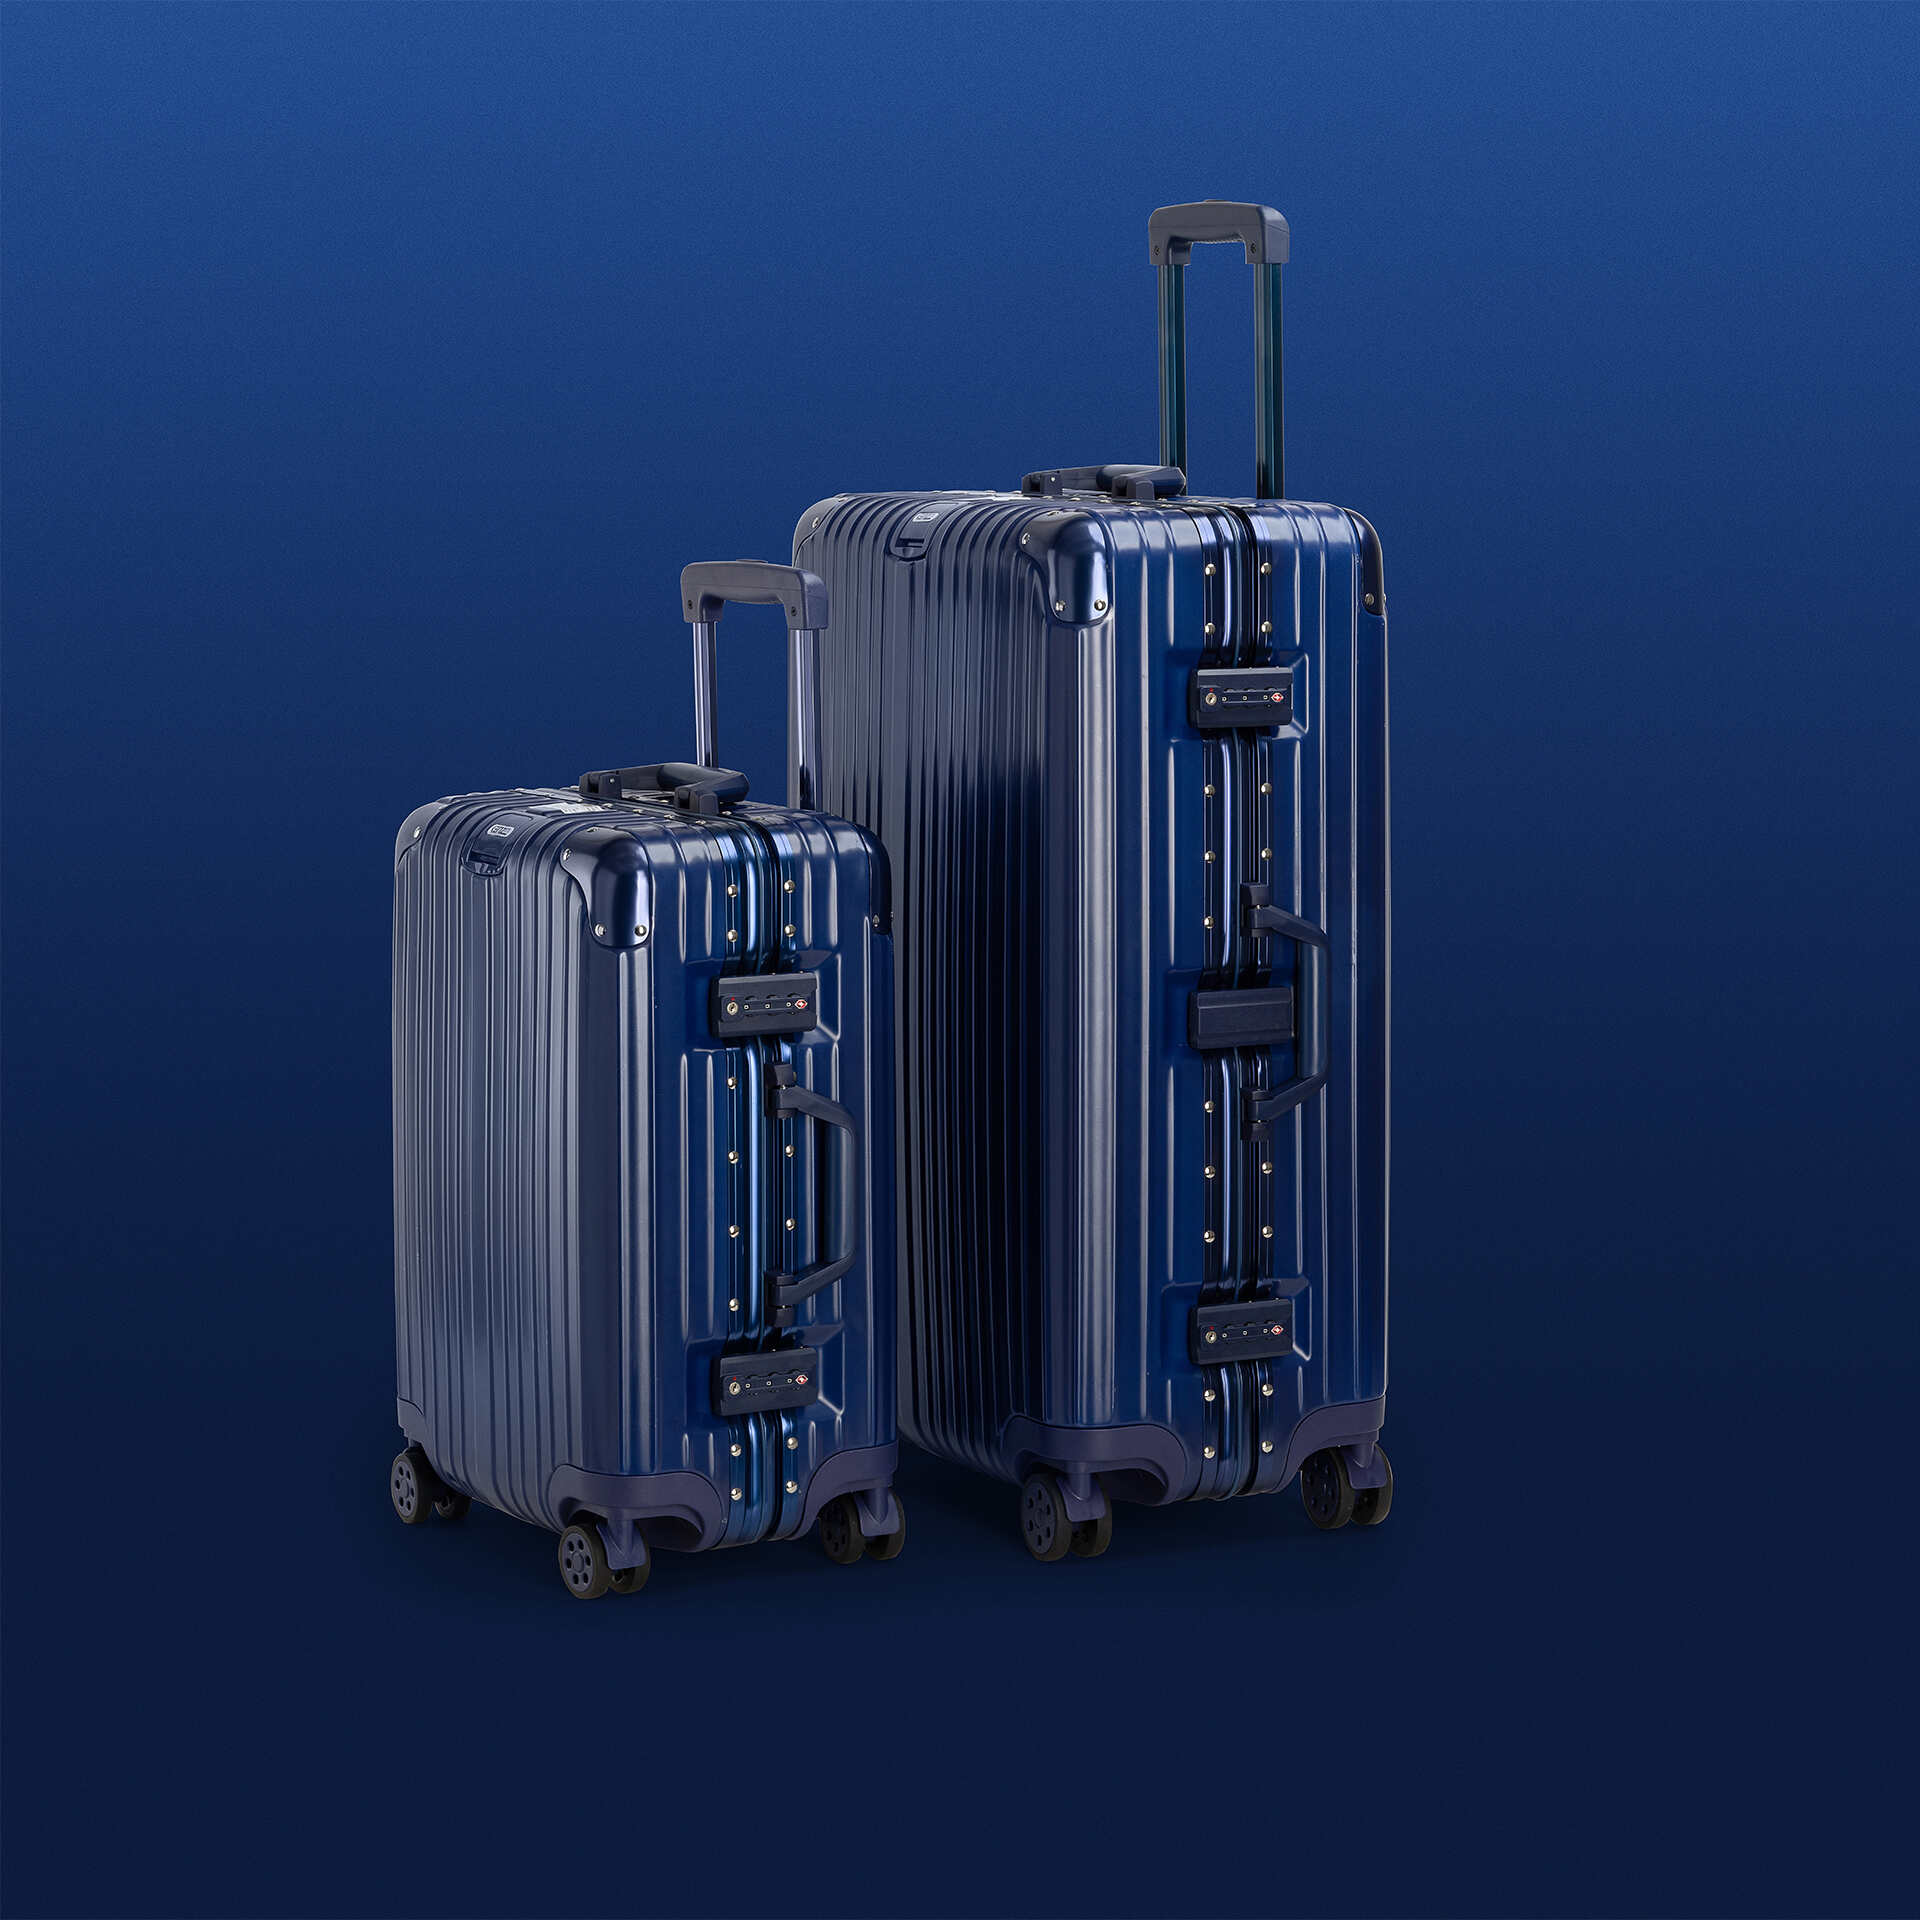 Luggage Bags For Your Travel